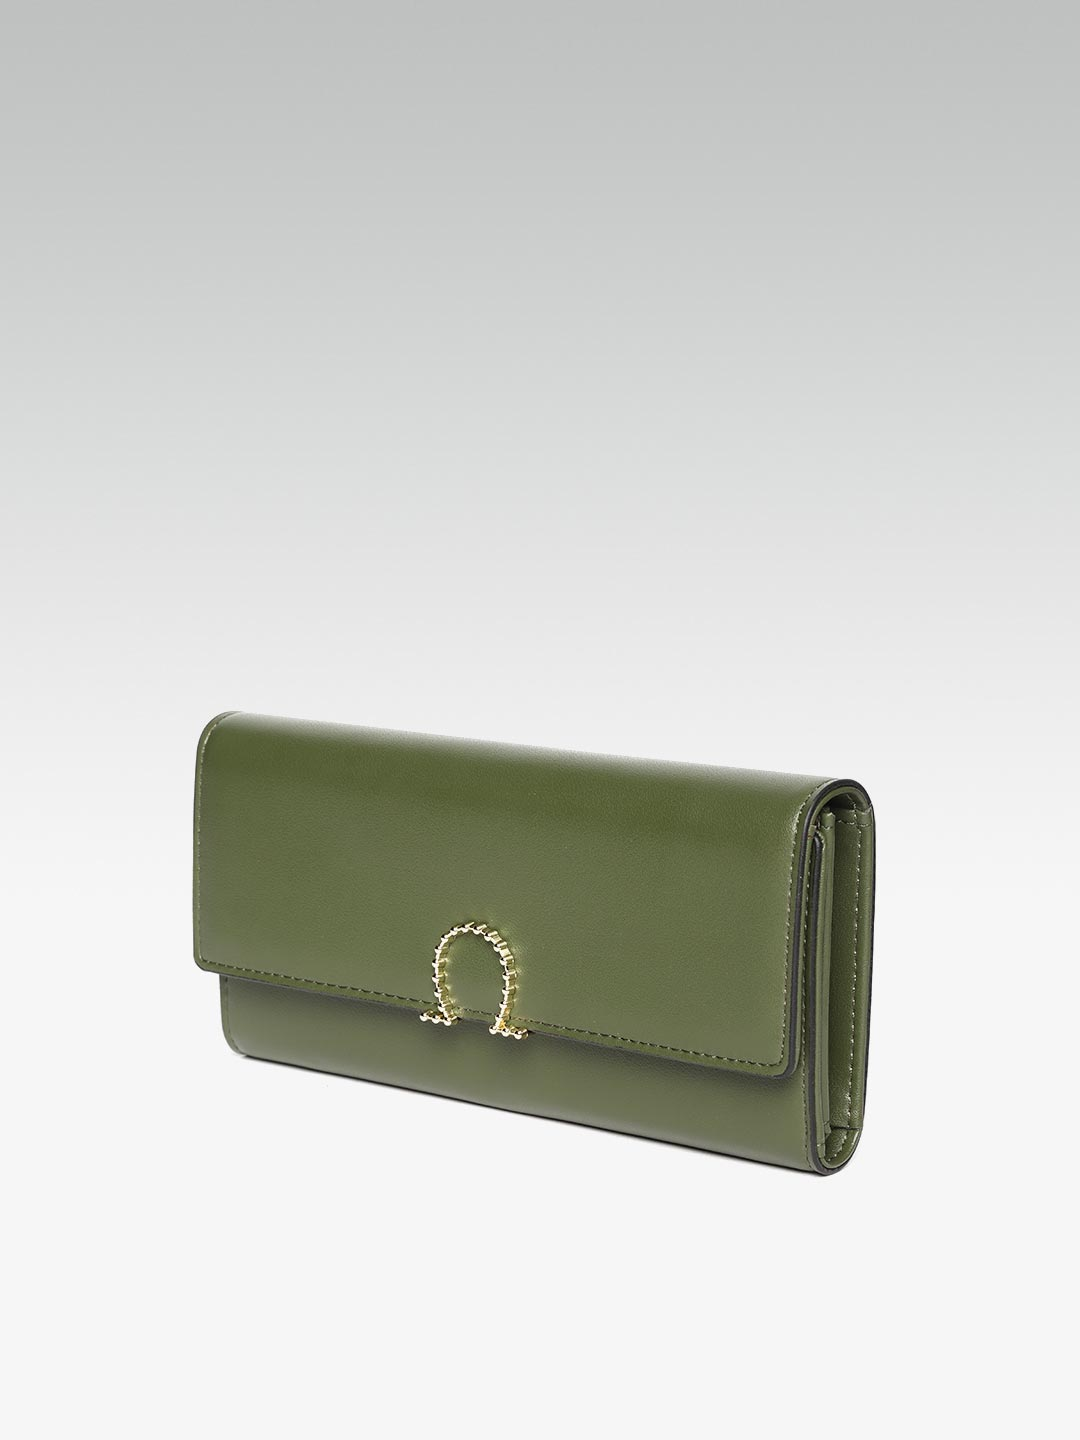 Wallets and Makeup Pouches-The Color Of Envy Wallet3